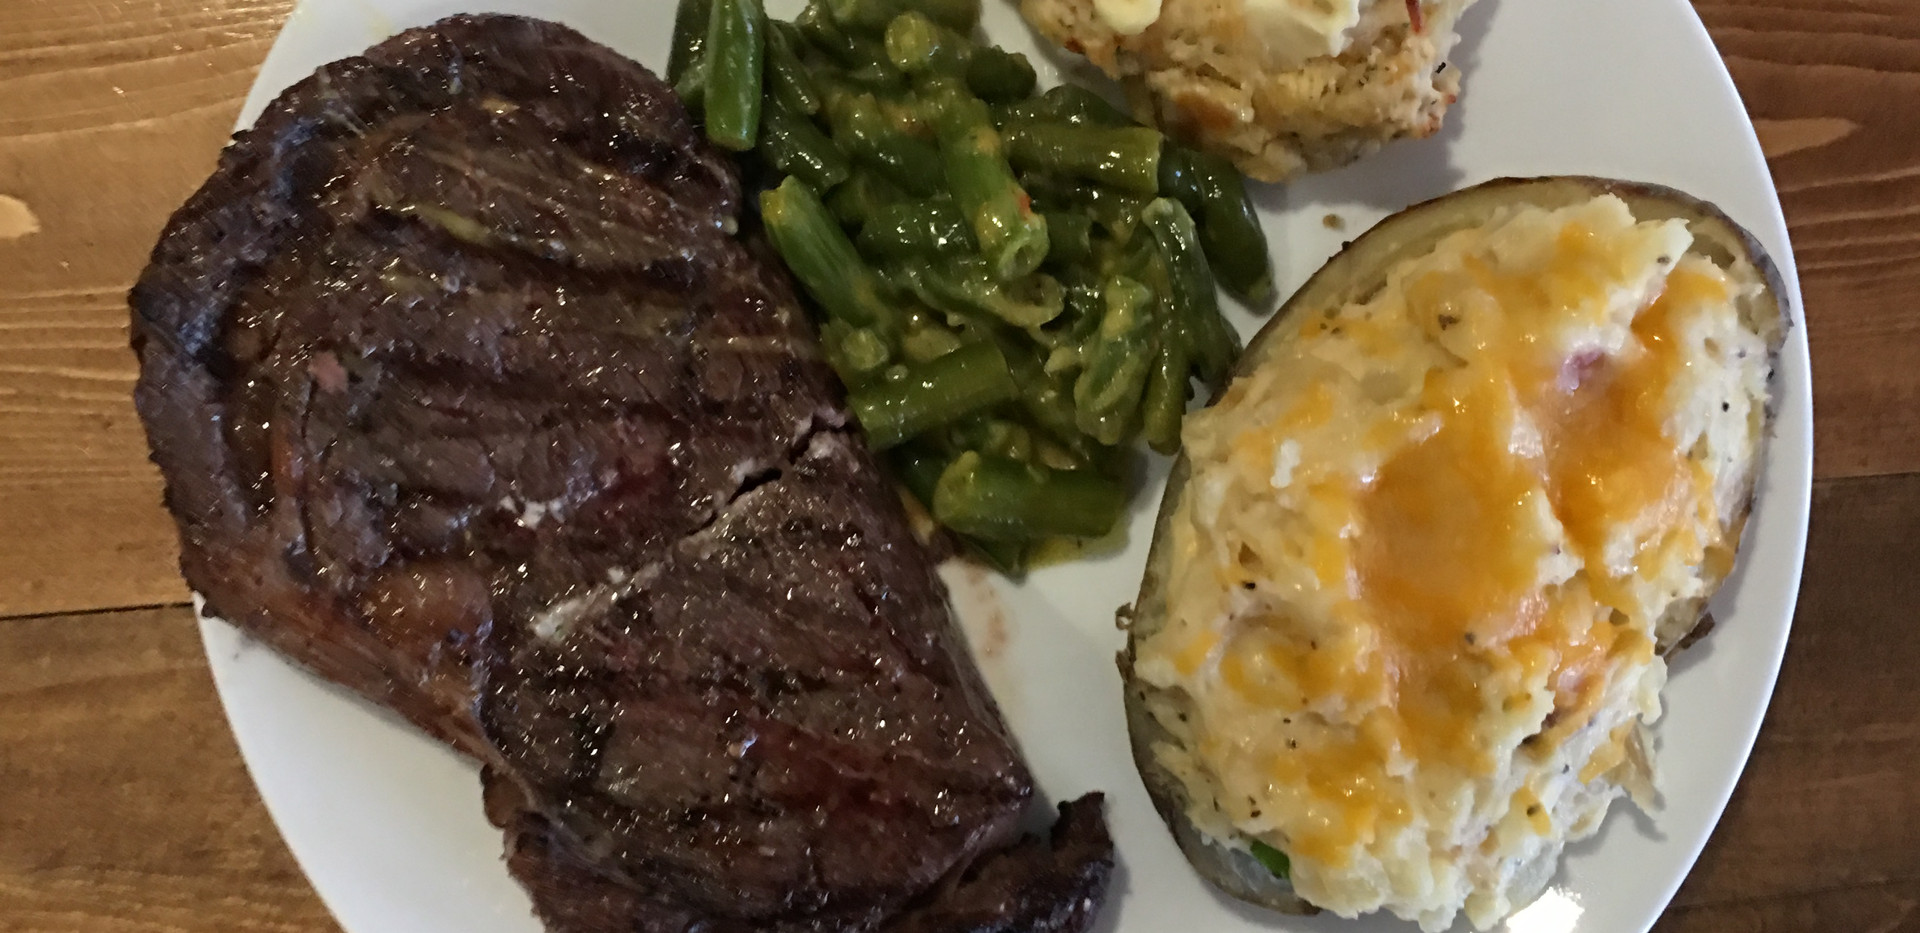 Steak and twice baked potatoes. We are always spoiled at Clearwater!